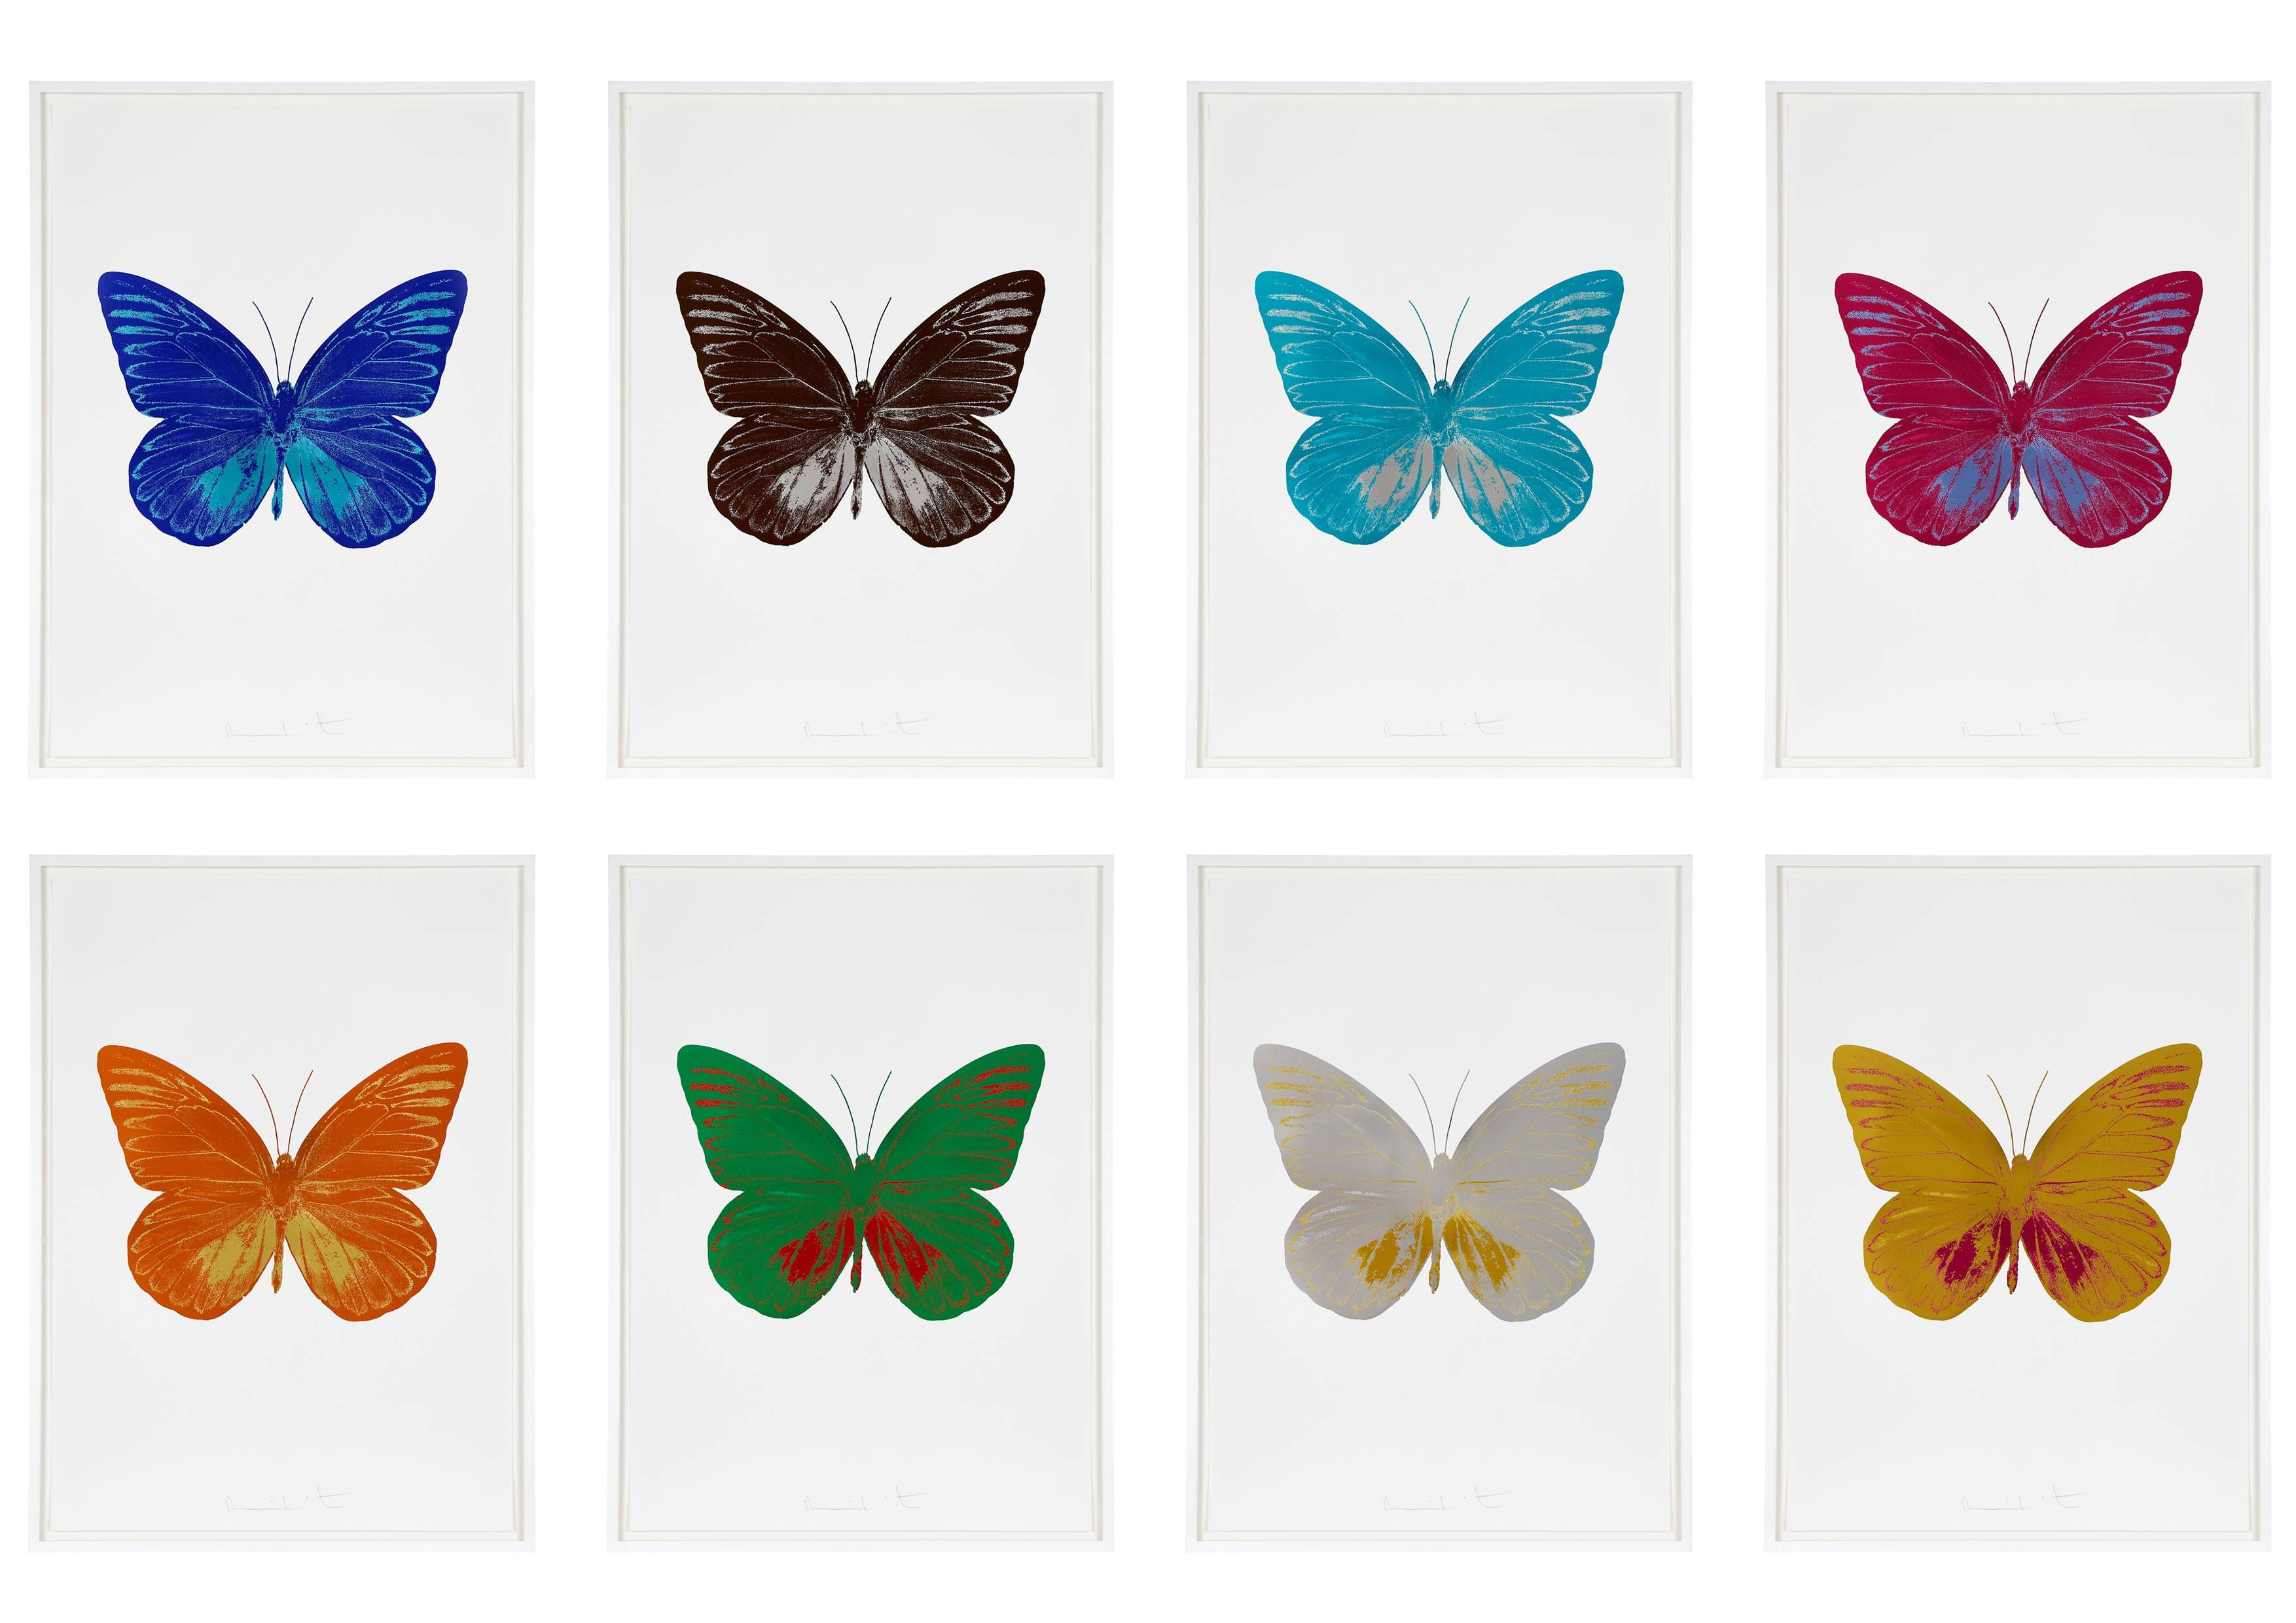 The soul, Damien Hirst